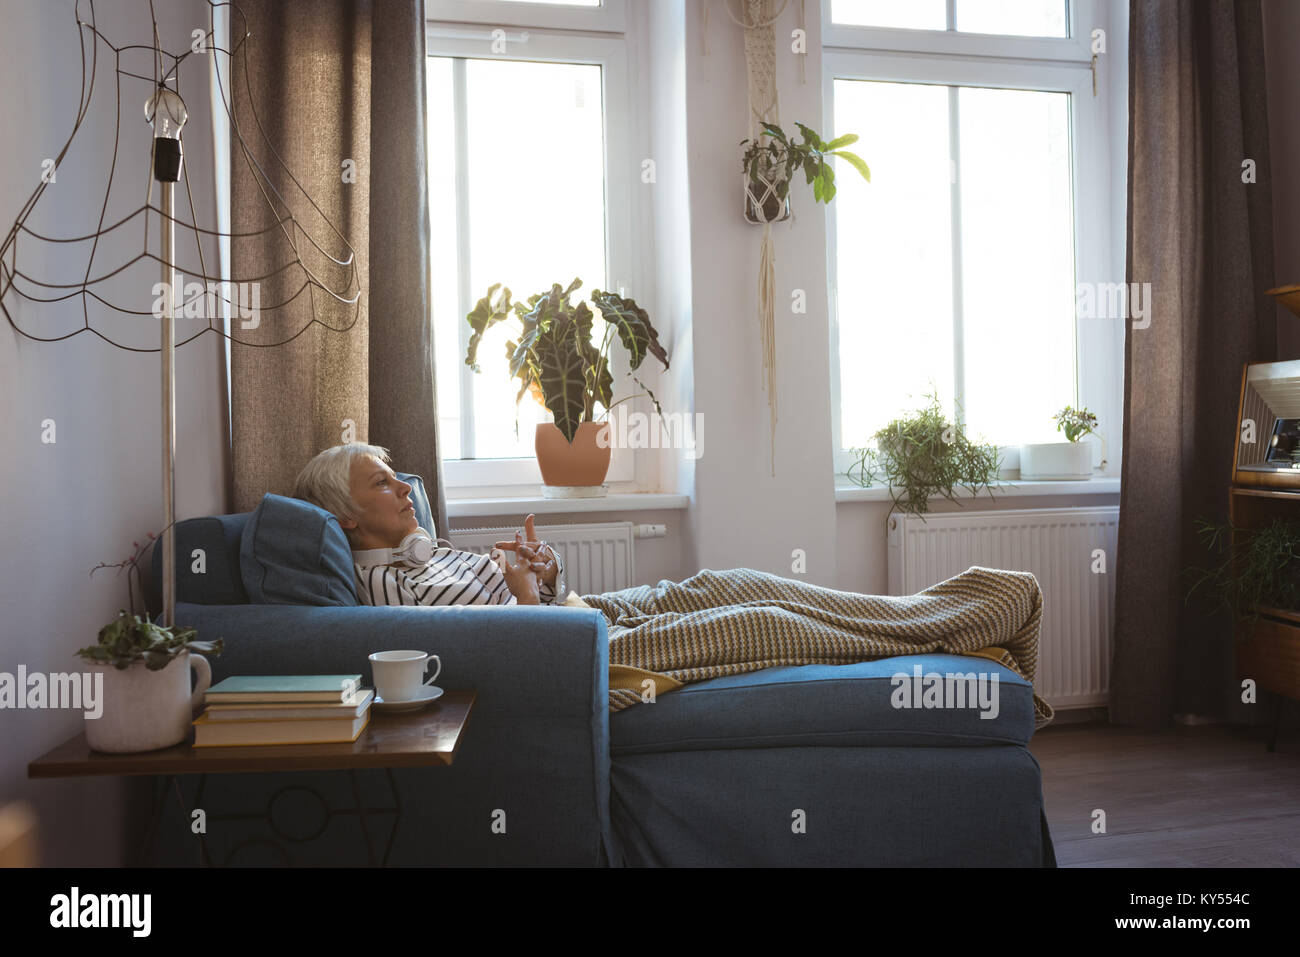 Senior woman relaxing on sofa in living room at home - Stock Image